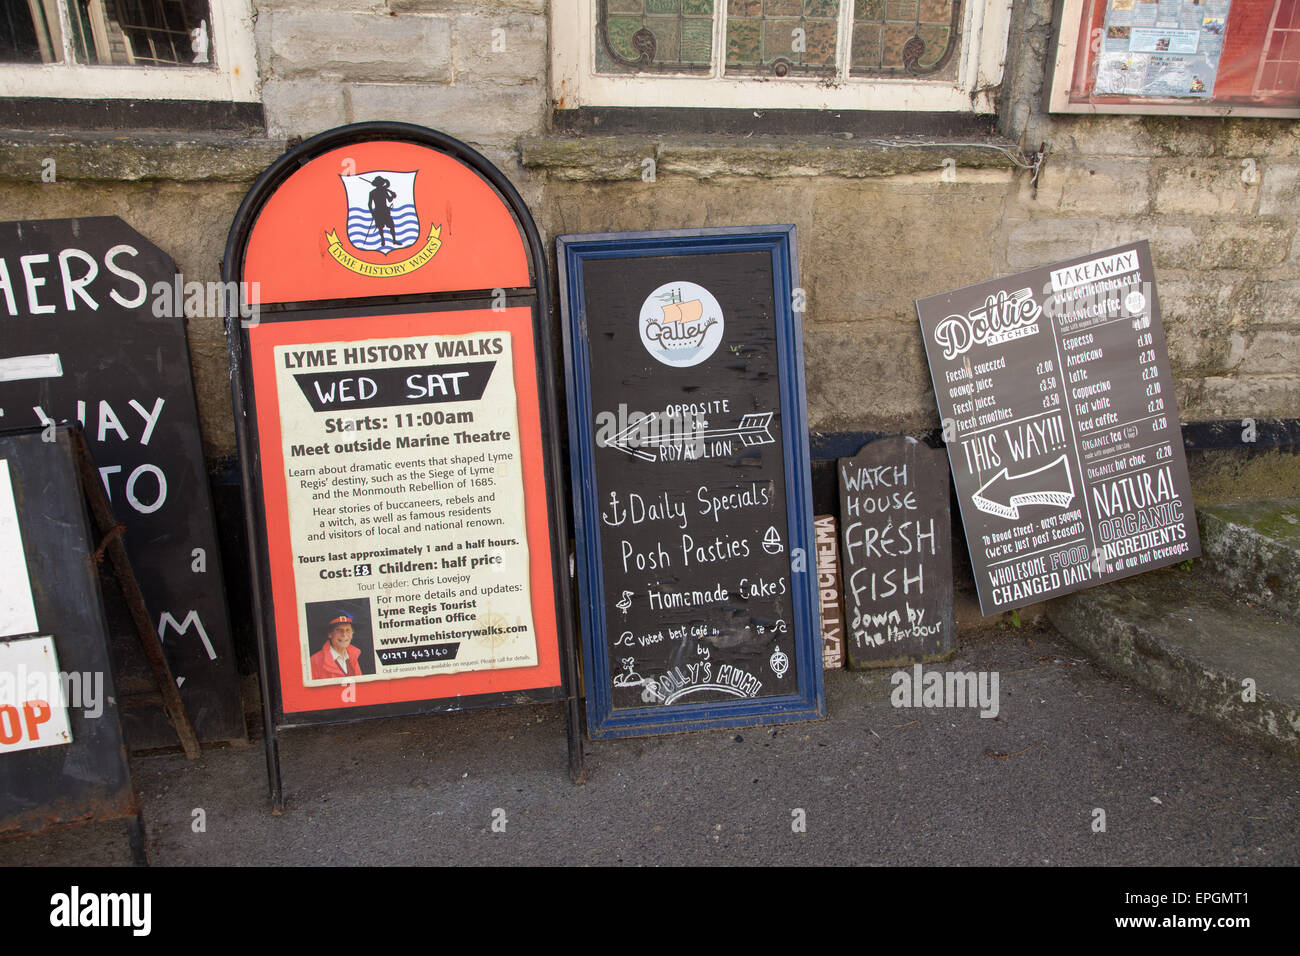 What's on, what to do in Lyme Regis, boards advertising things to do - Stock Image